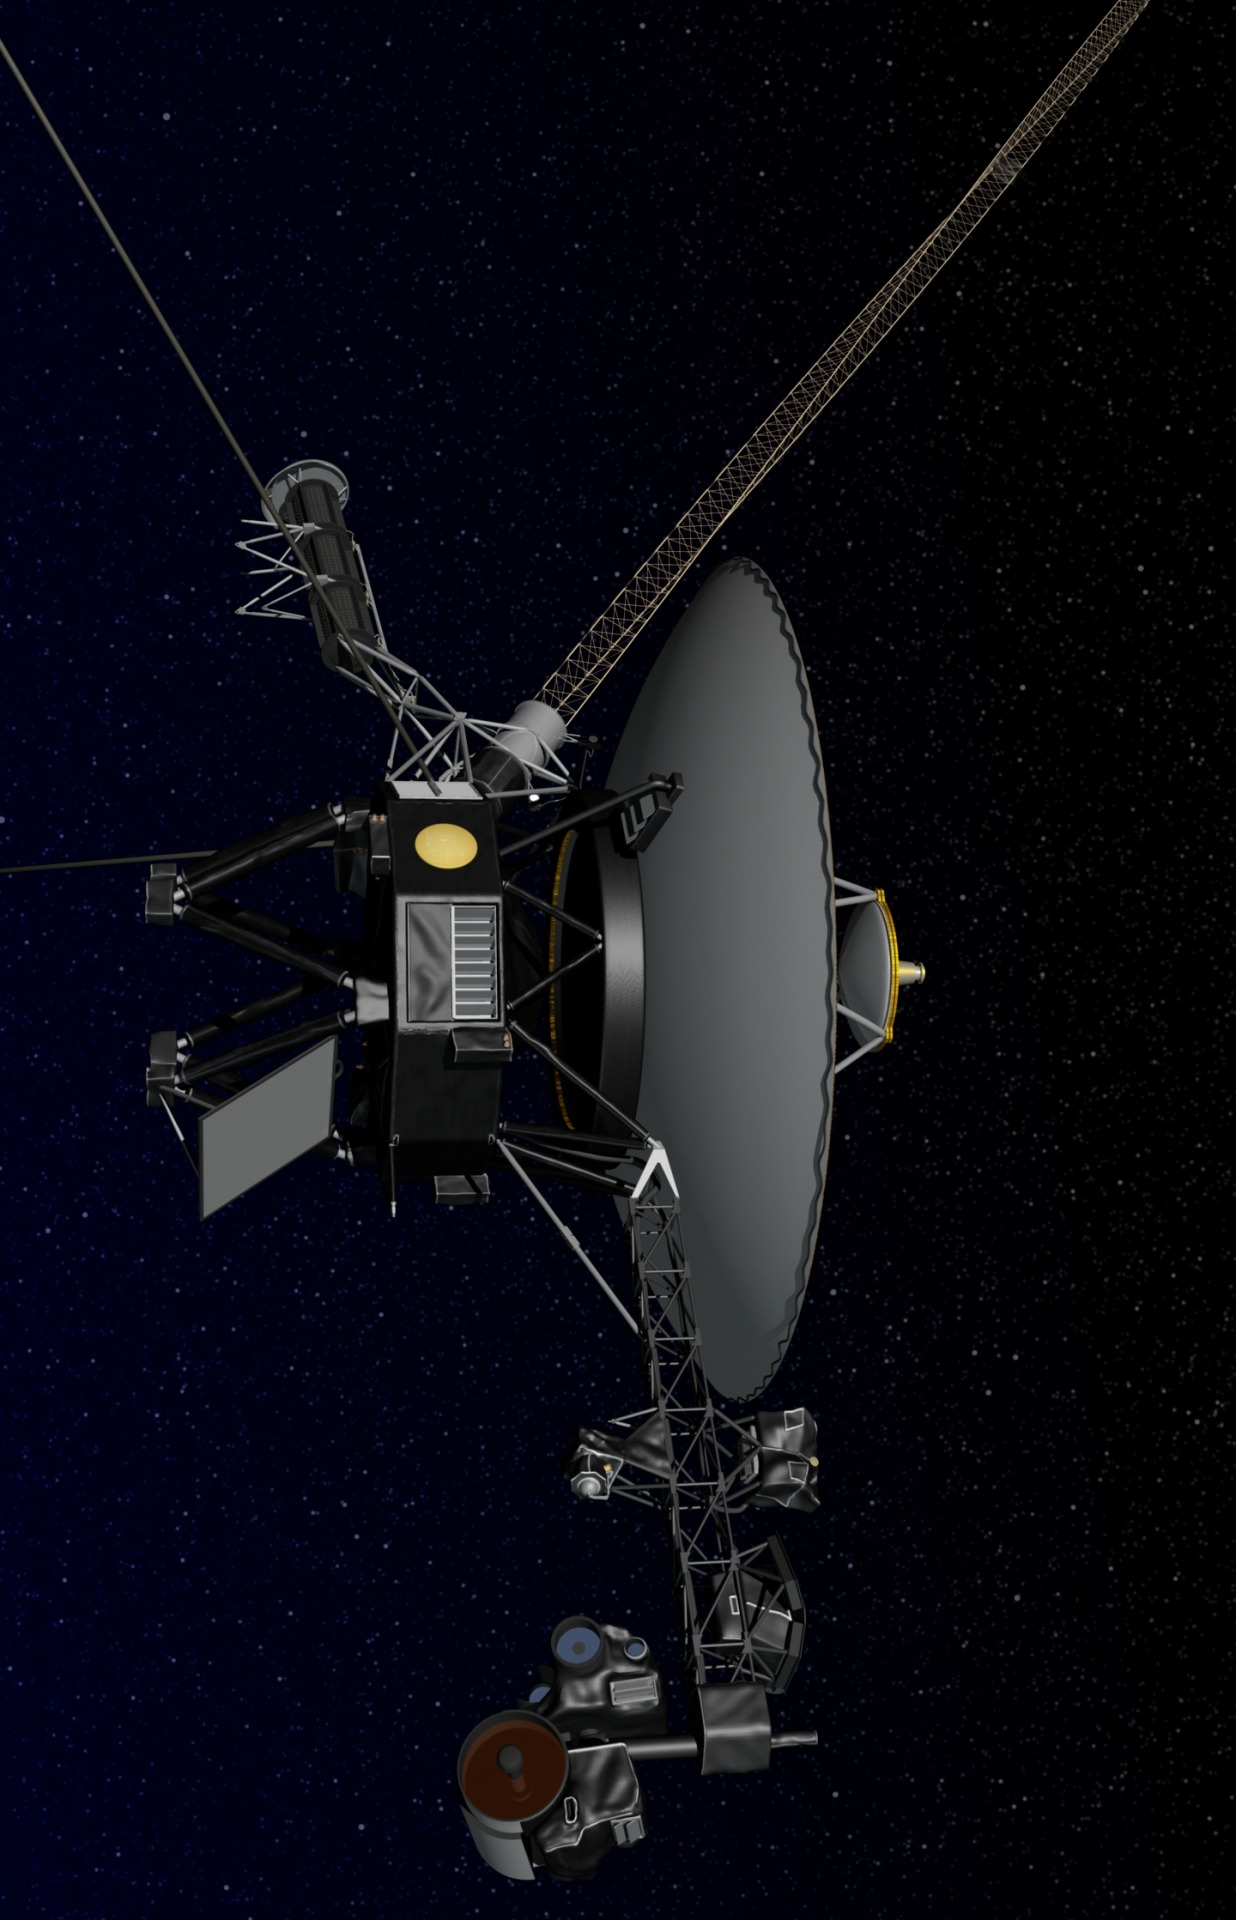 space probe voyager - HD 1236×1920